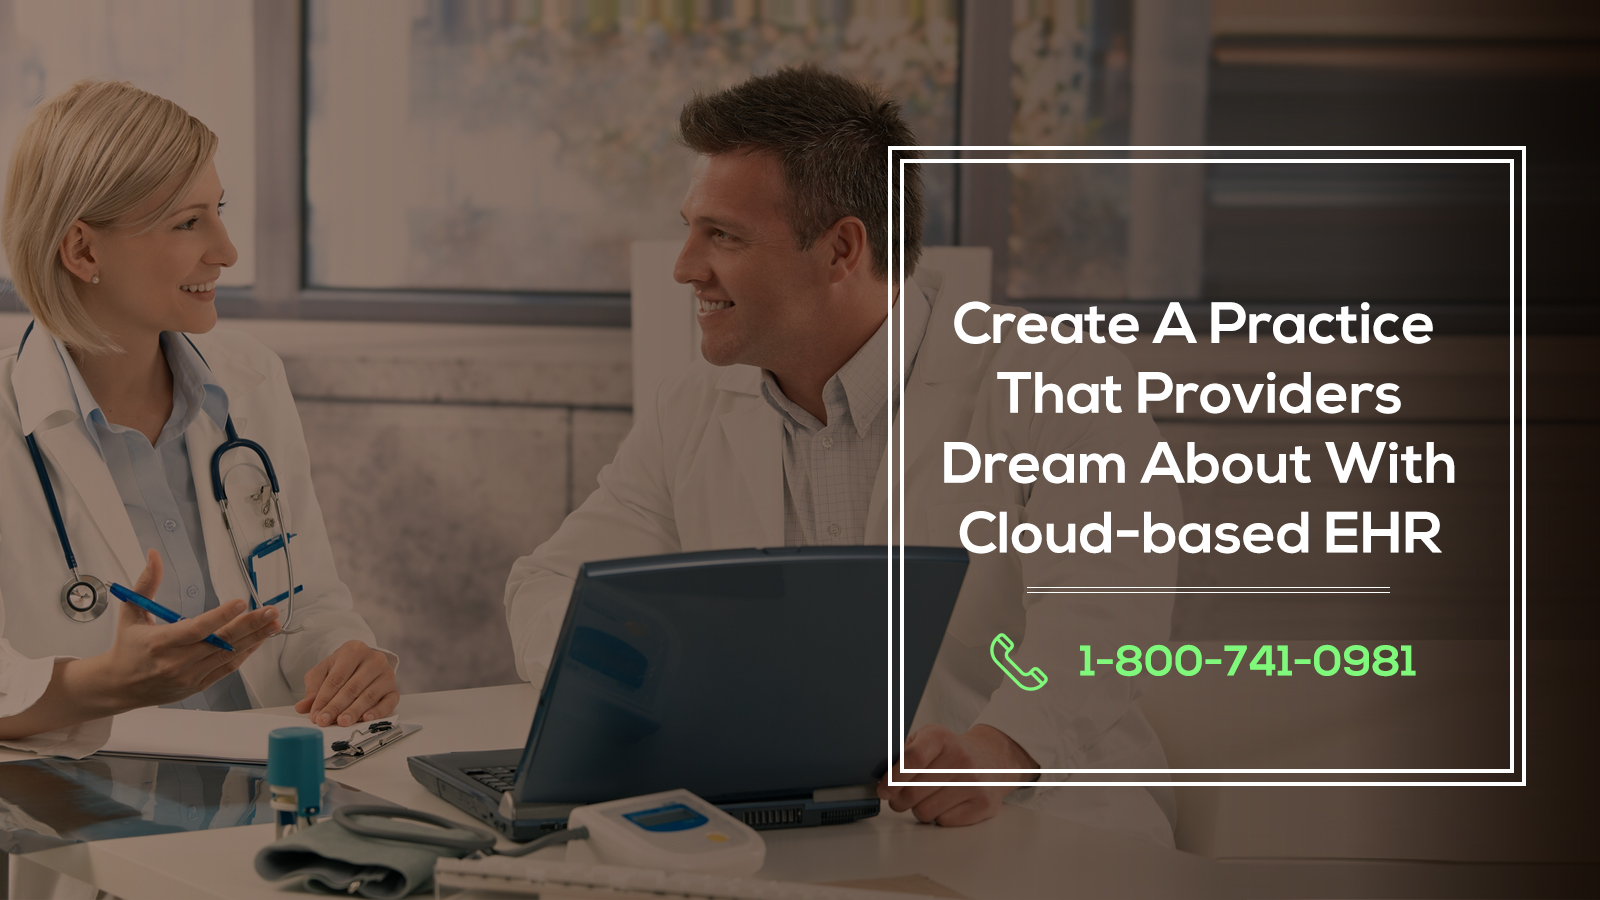 iPatientCare Blog - Create a Practice that Providers Dream About With Cloud-Based EHR